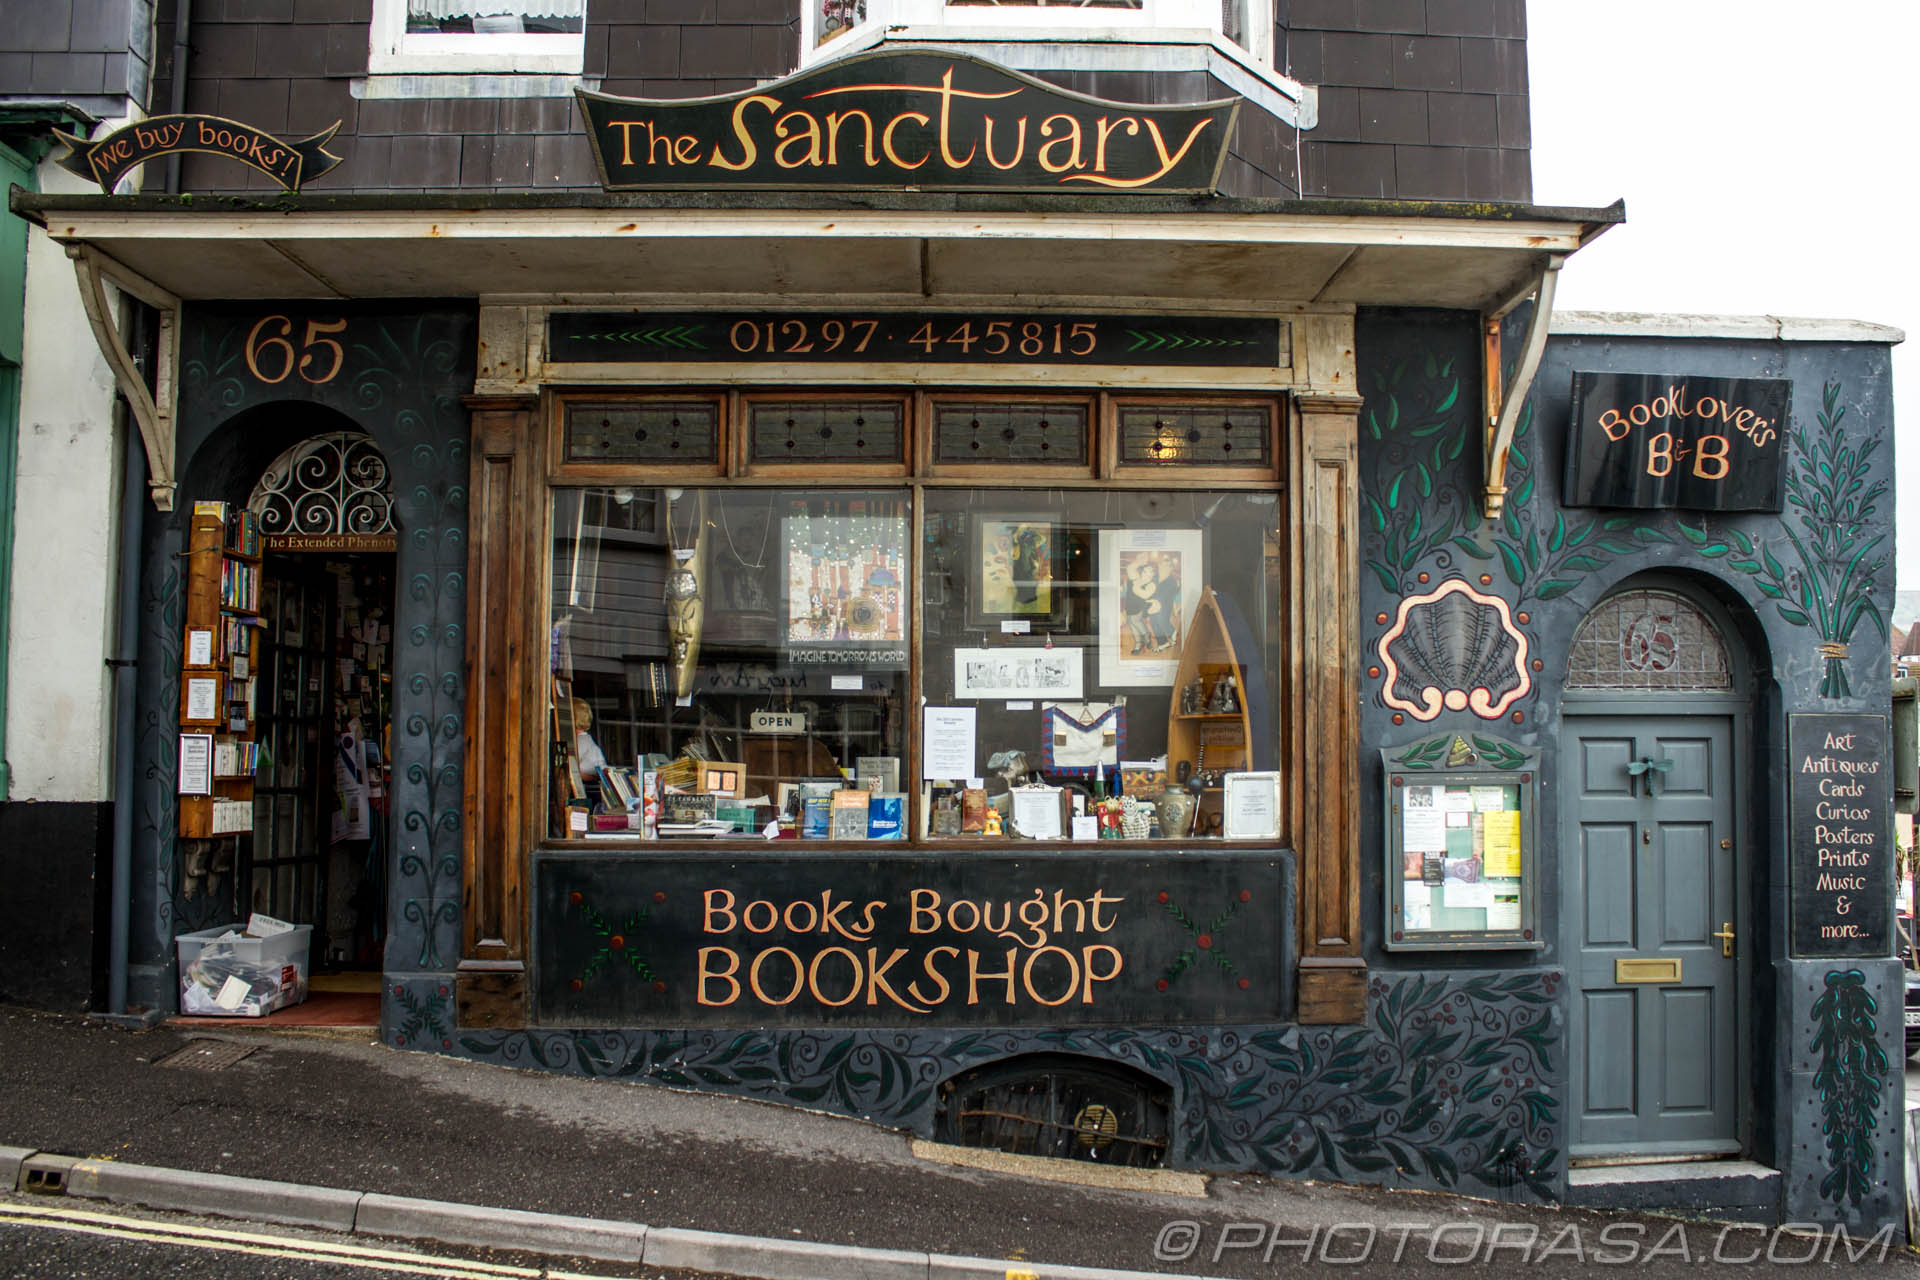 http://photorasa.com/lyme-regis/sanctuary-book-shop/